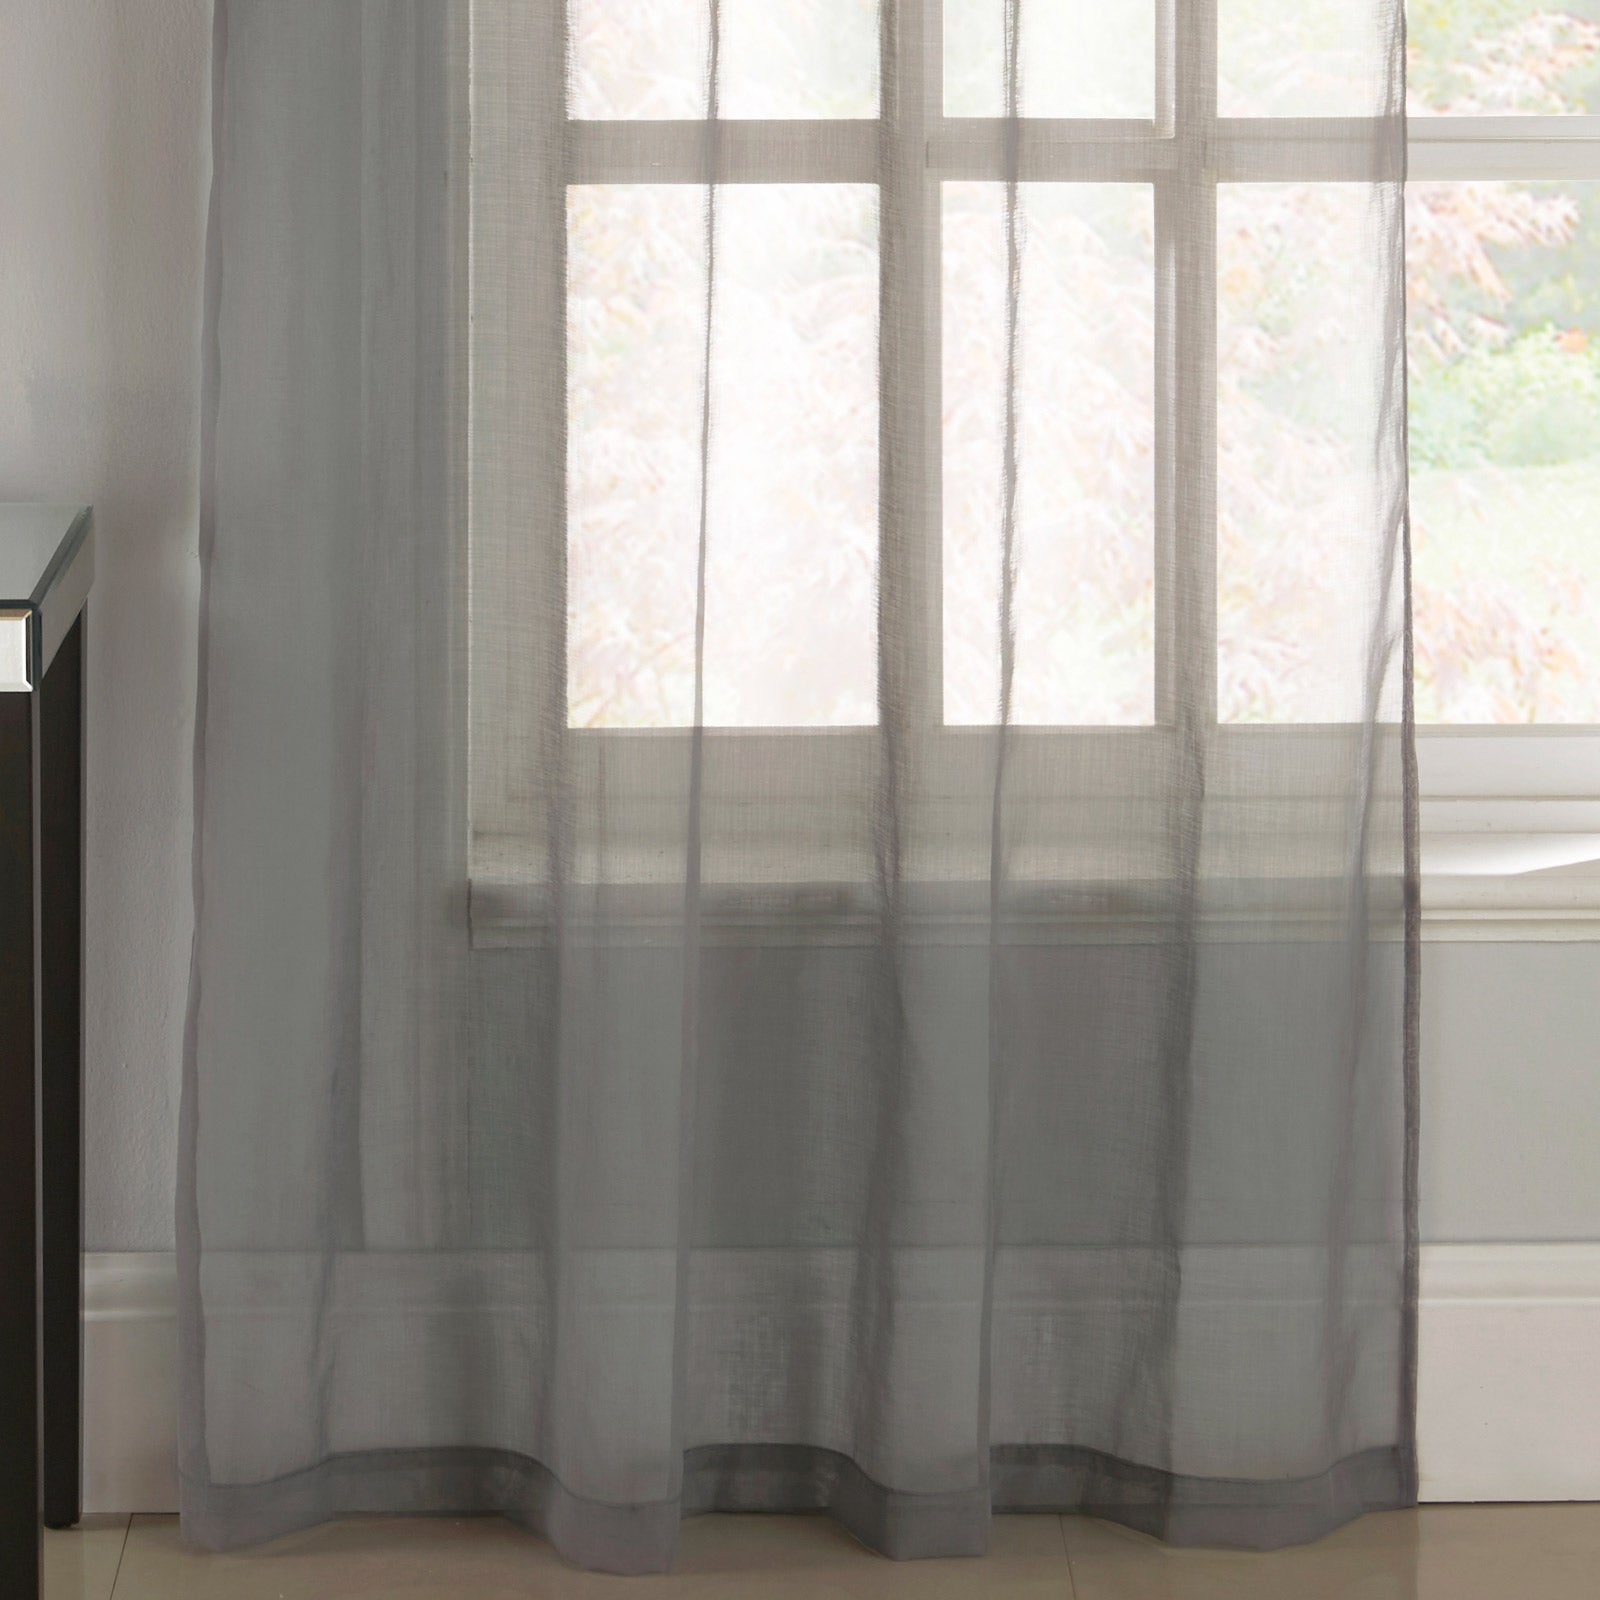 Tiffany Diamante Eyelet Voile Curtain Panels Grey -  - Ideal Textiles